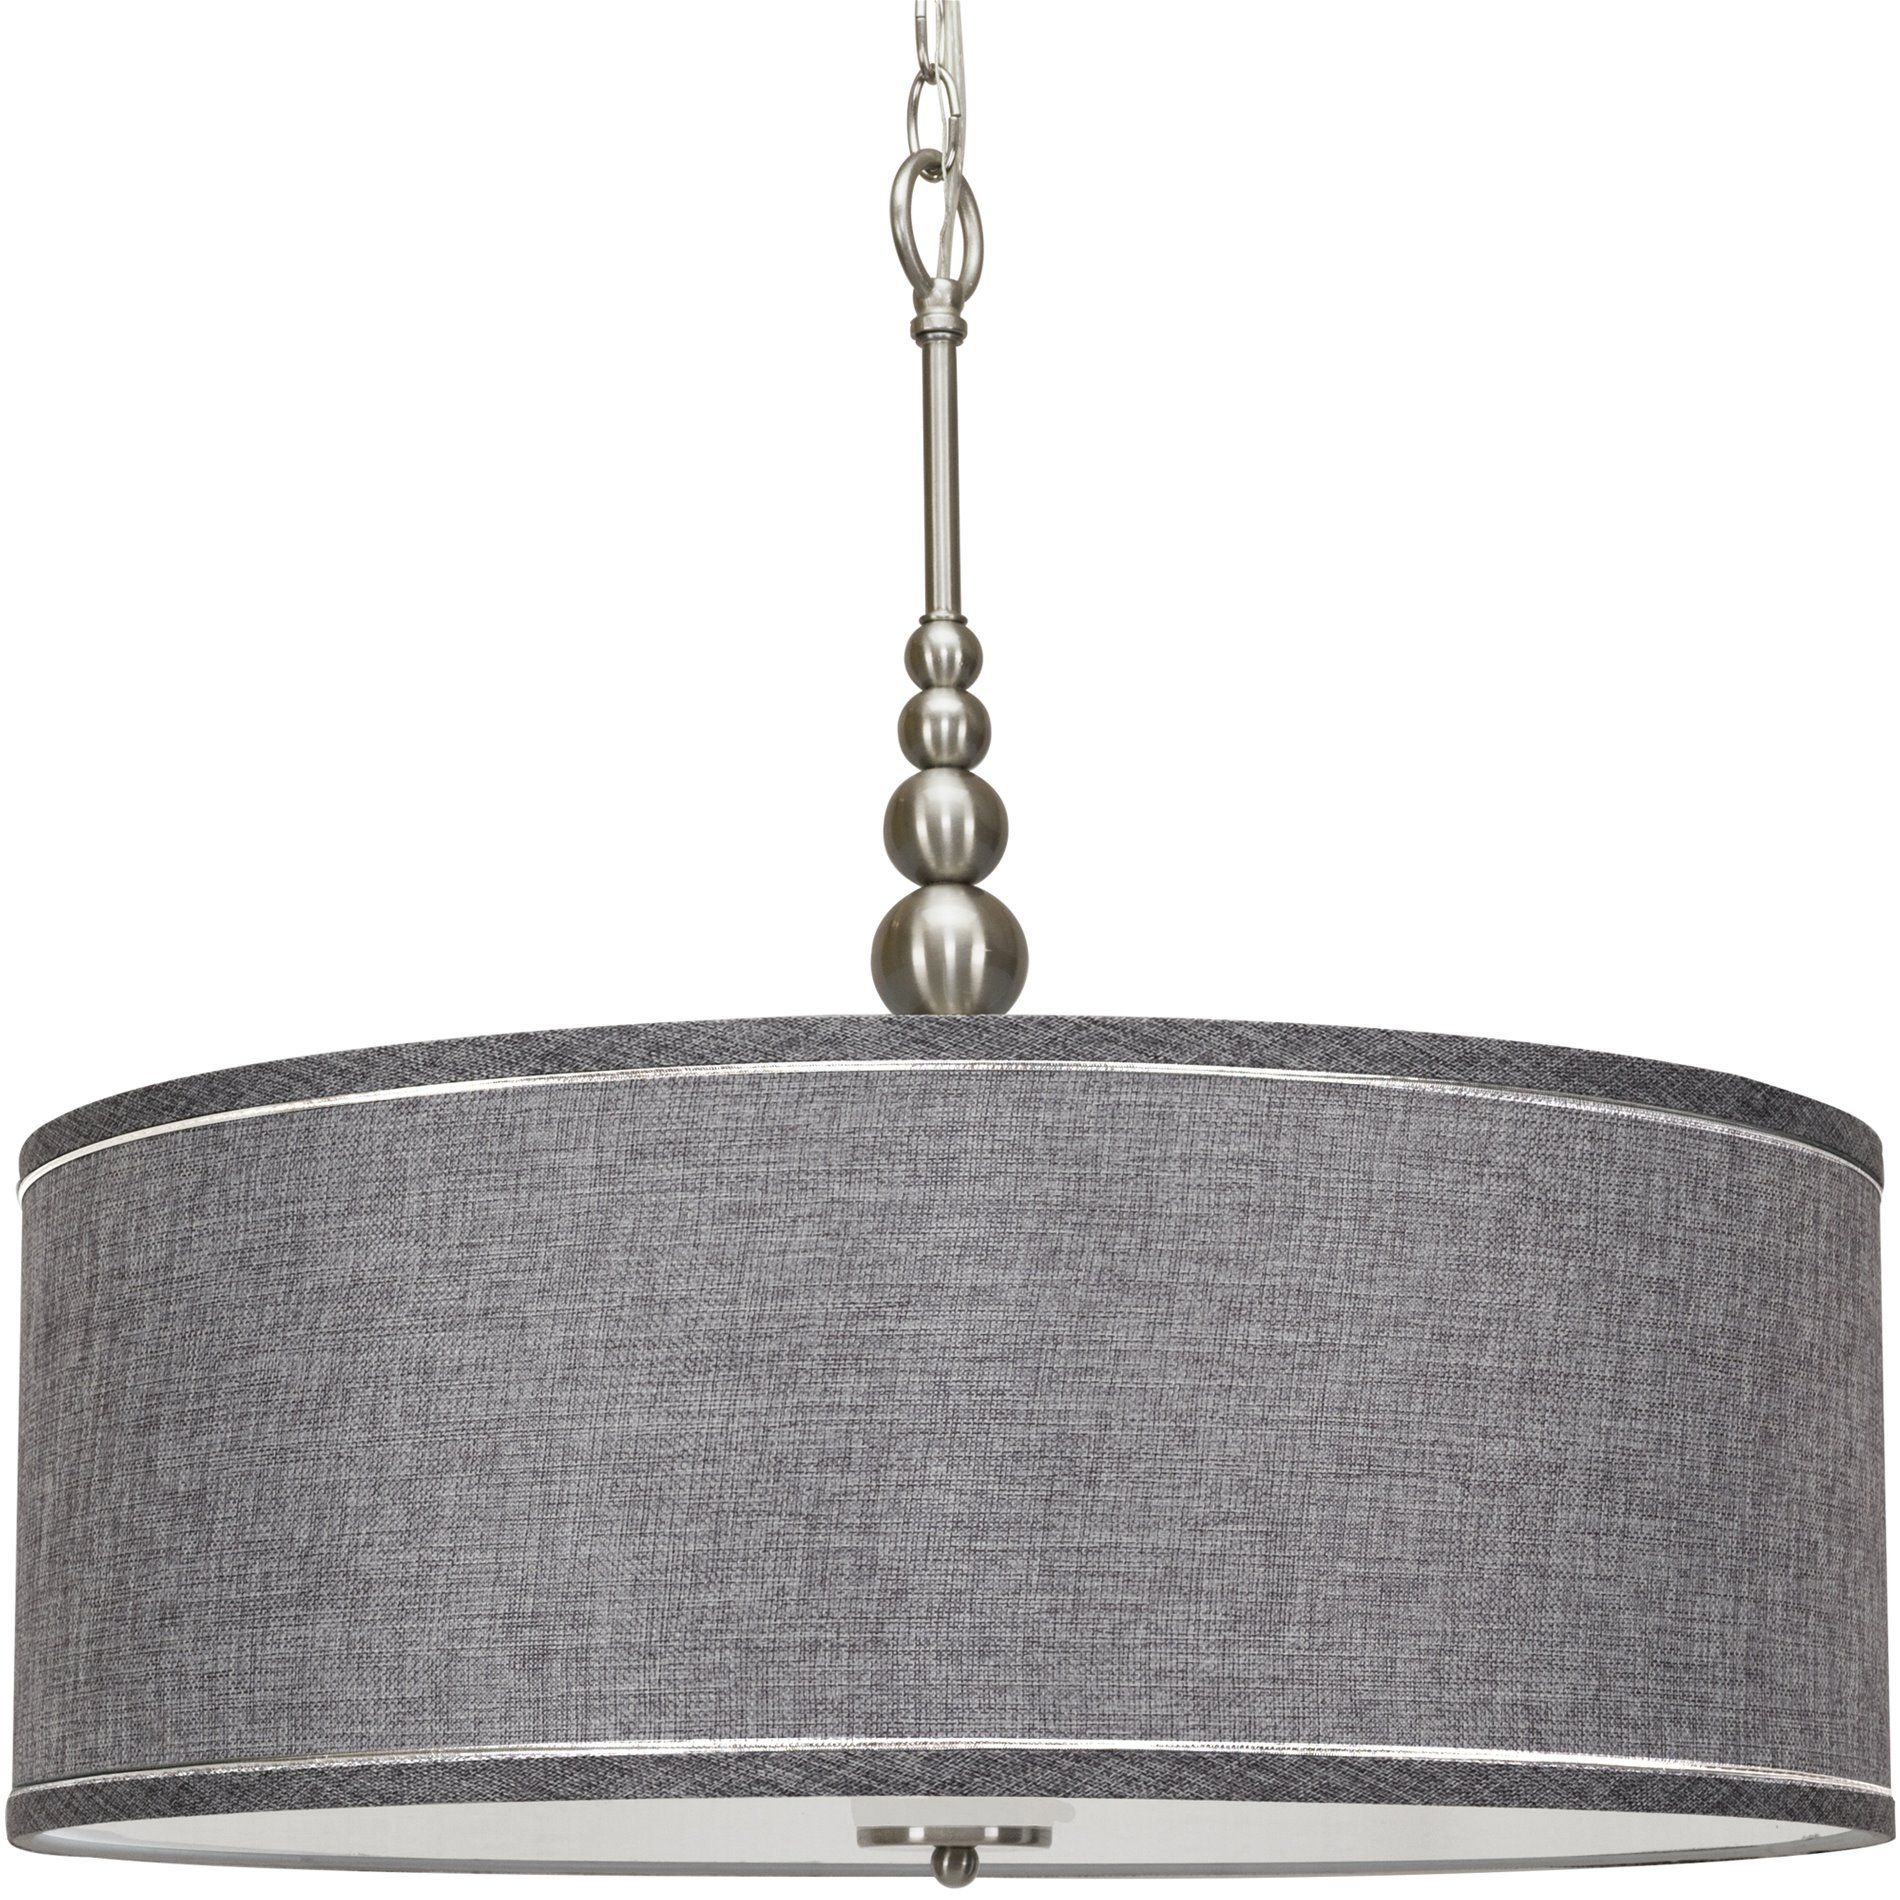 Kira Home Adelade 22'' Modern 3-Light Drum Pendant Chandelier, Gray Fabric Shade, Tempered Glass Diffuser, Adjustable Height, Brushed Nickel Finish by Kira Home